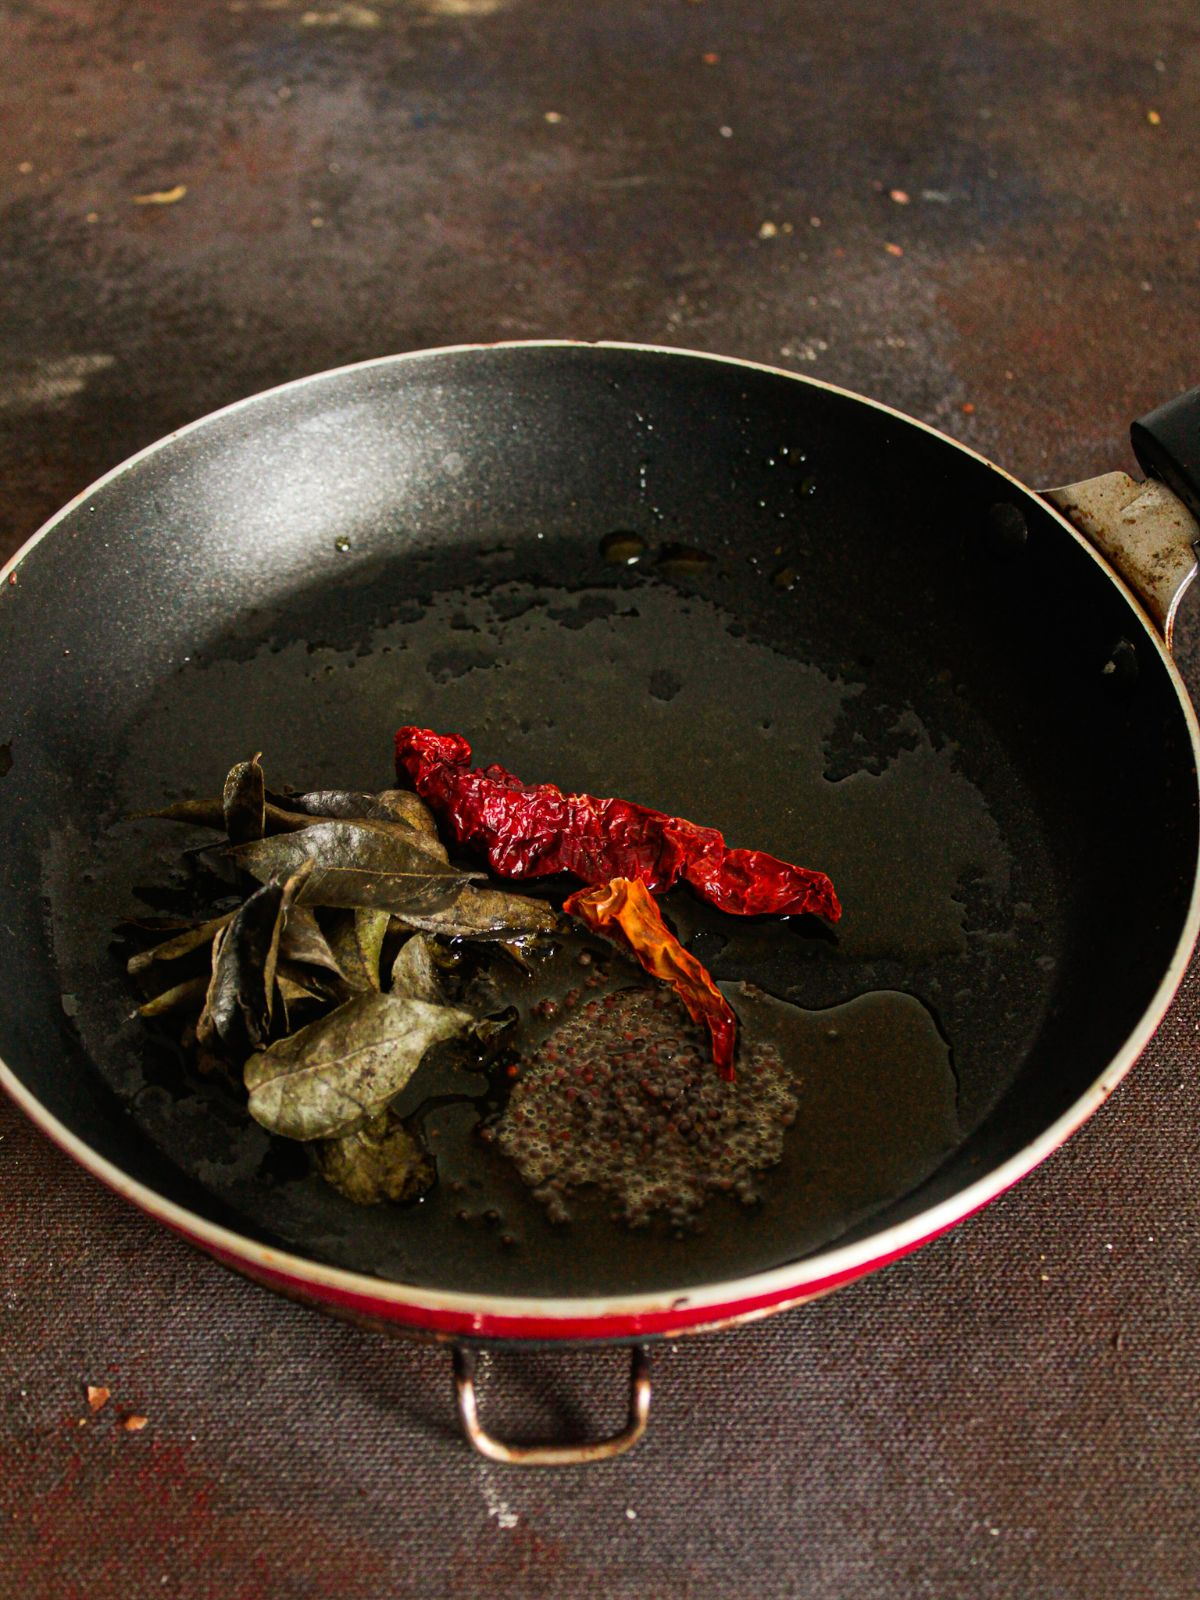 skillet with seeds and oil for tempering